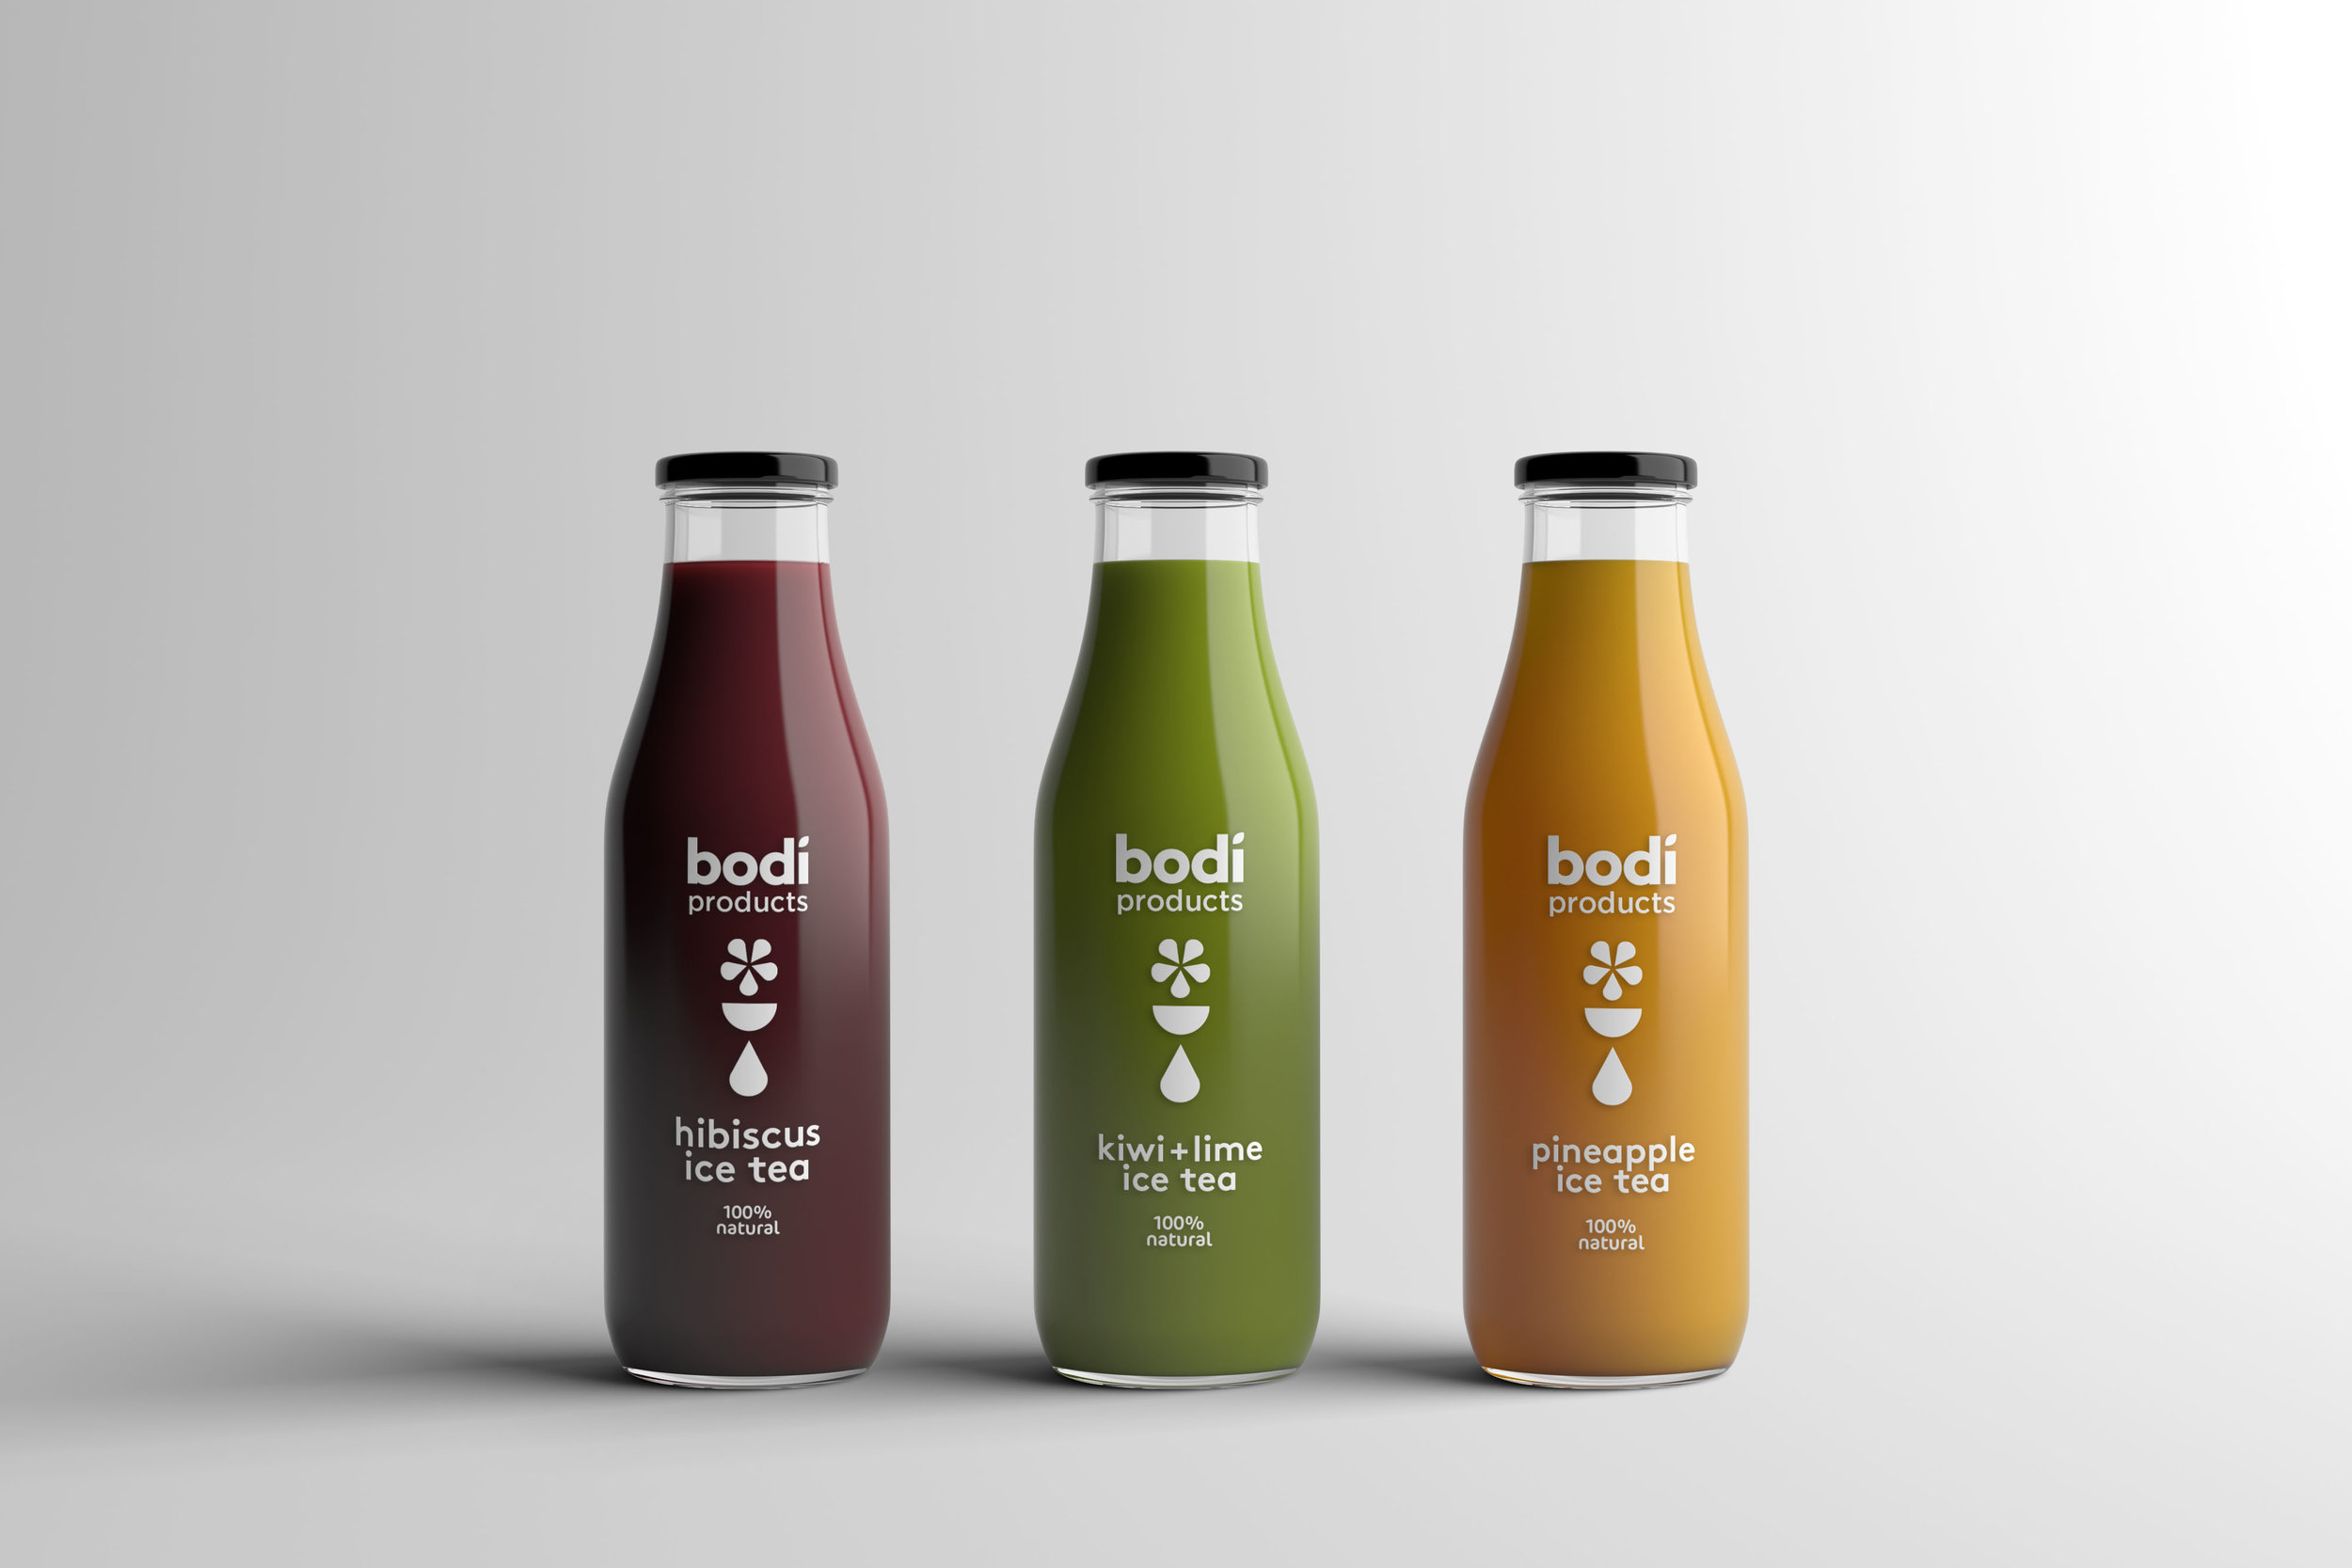 Fresh Branding and Packaging Design for a New Startup Health Drink Brand